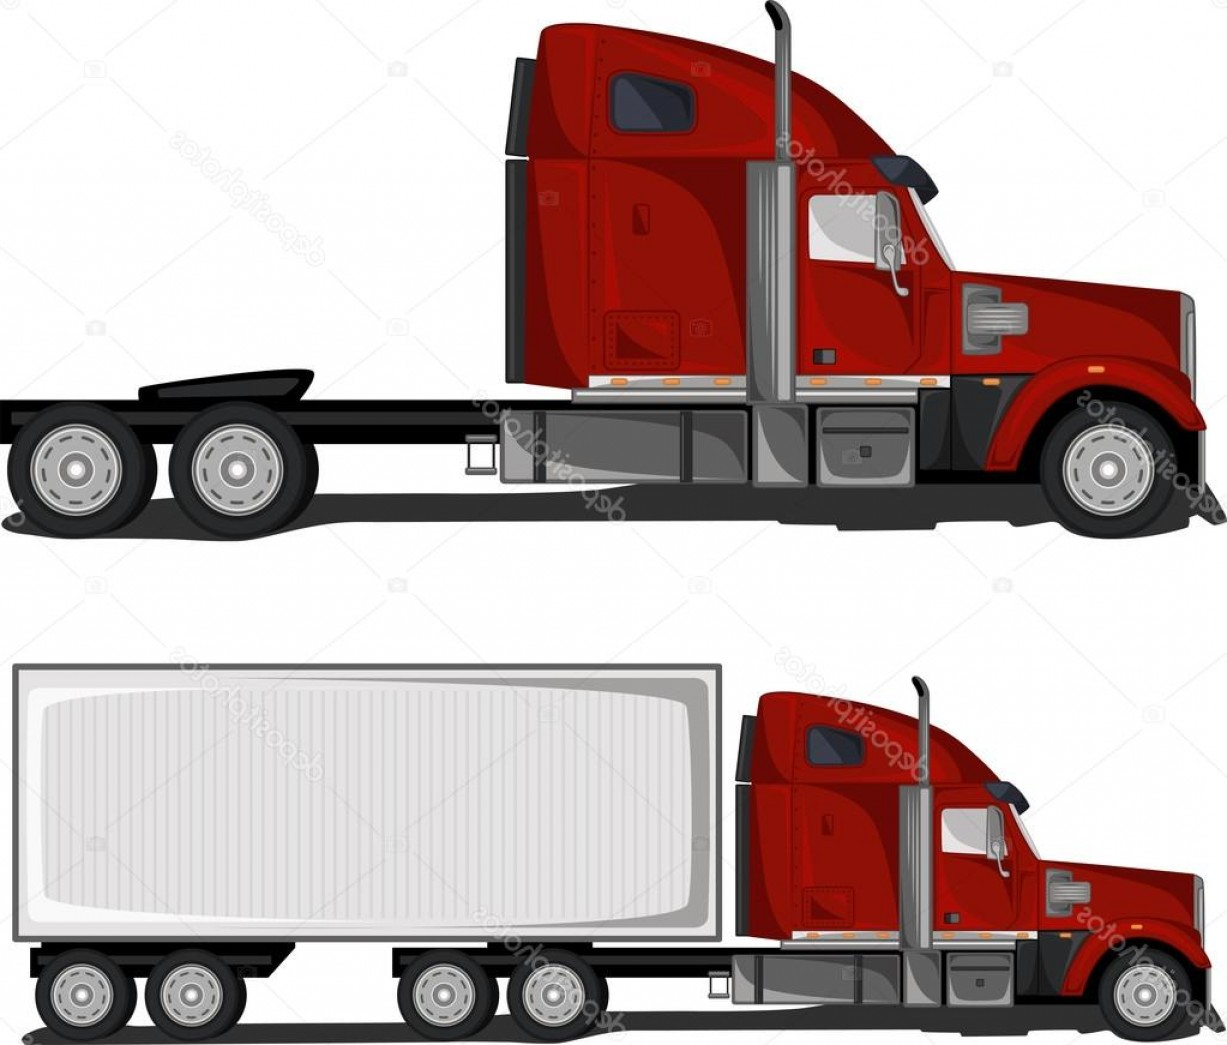 Gruas Truck Vector: Stock Illustration Red Truck With Trailer